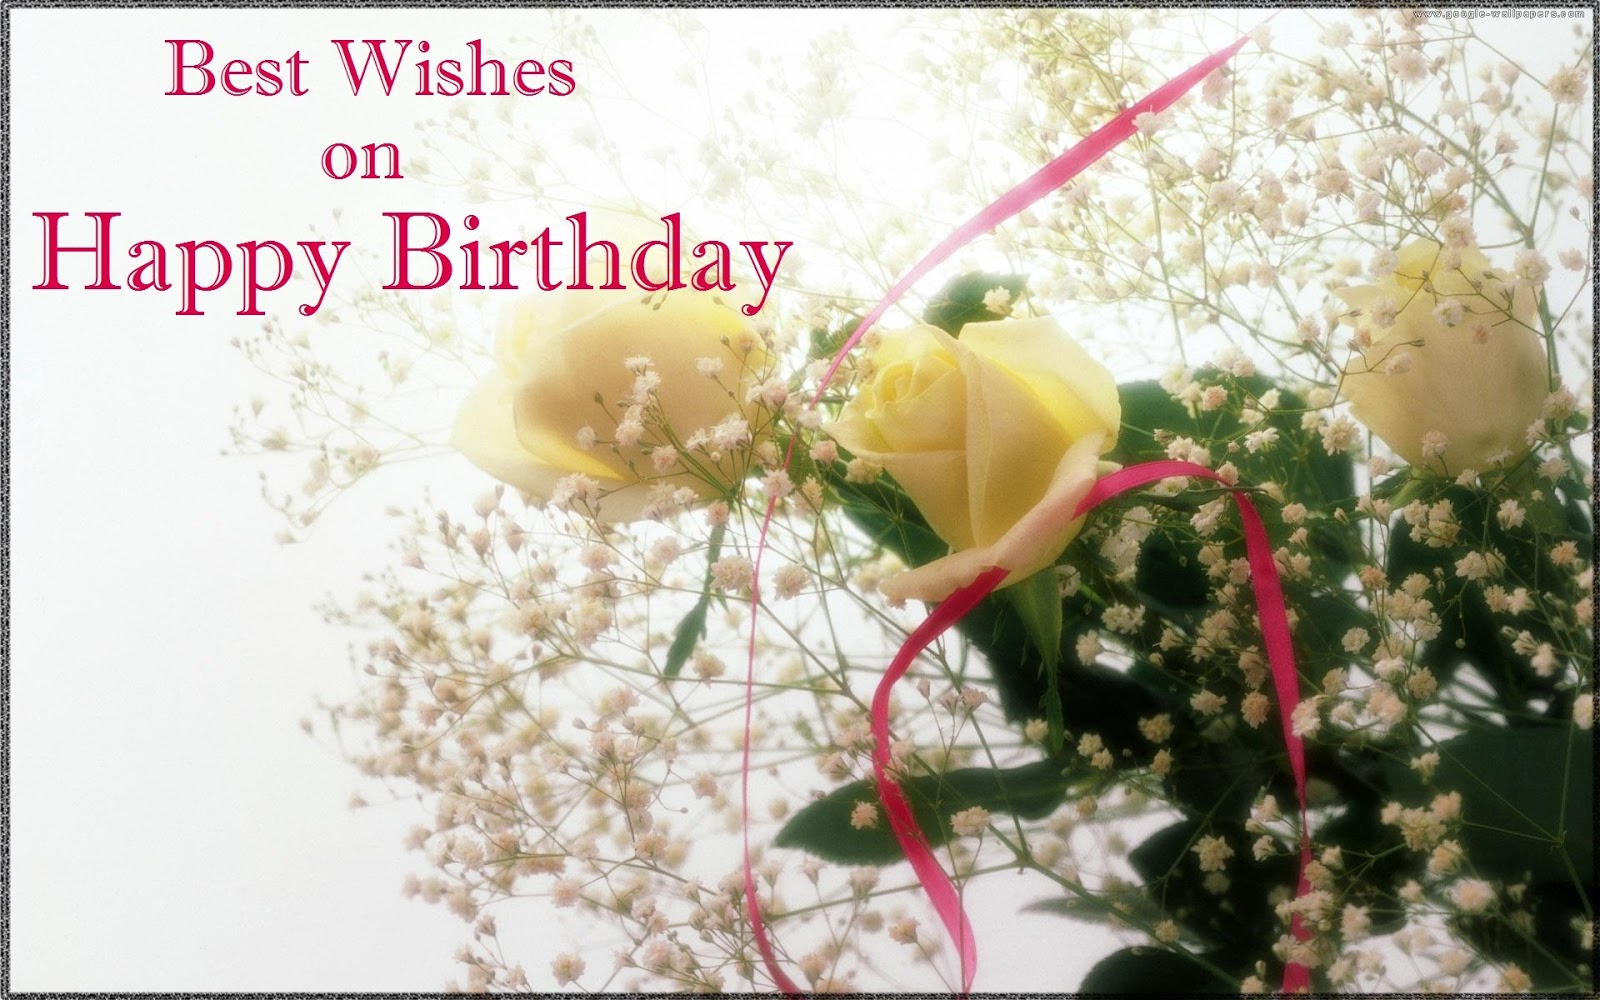 Best Birthday Greetings On Facebook Images Greetings Card Design